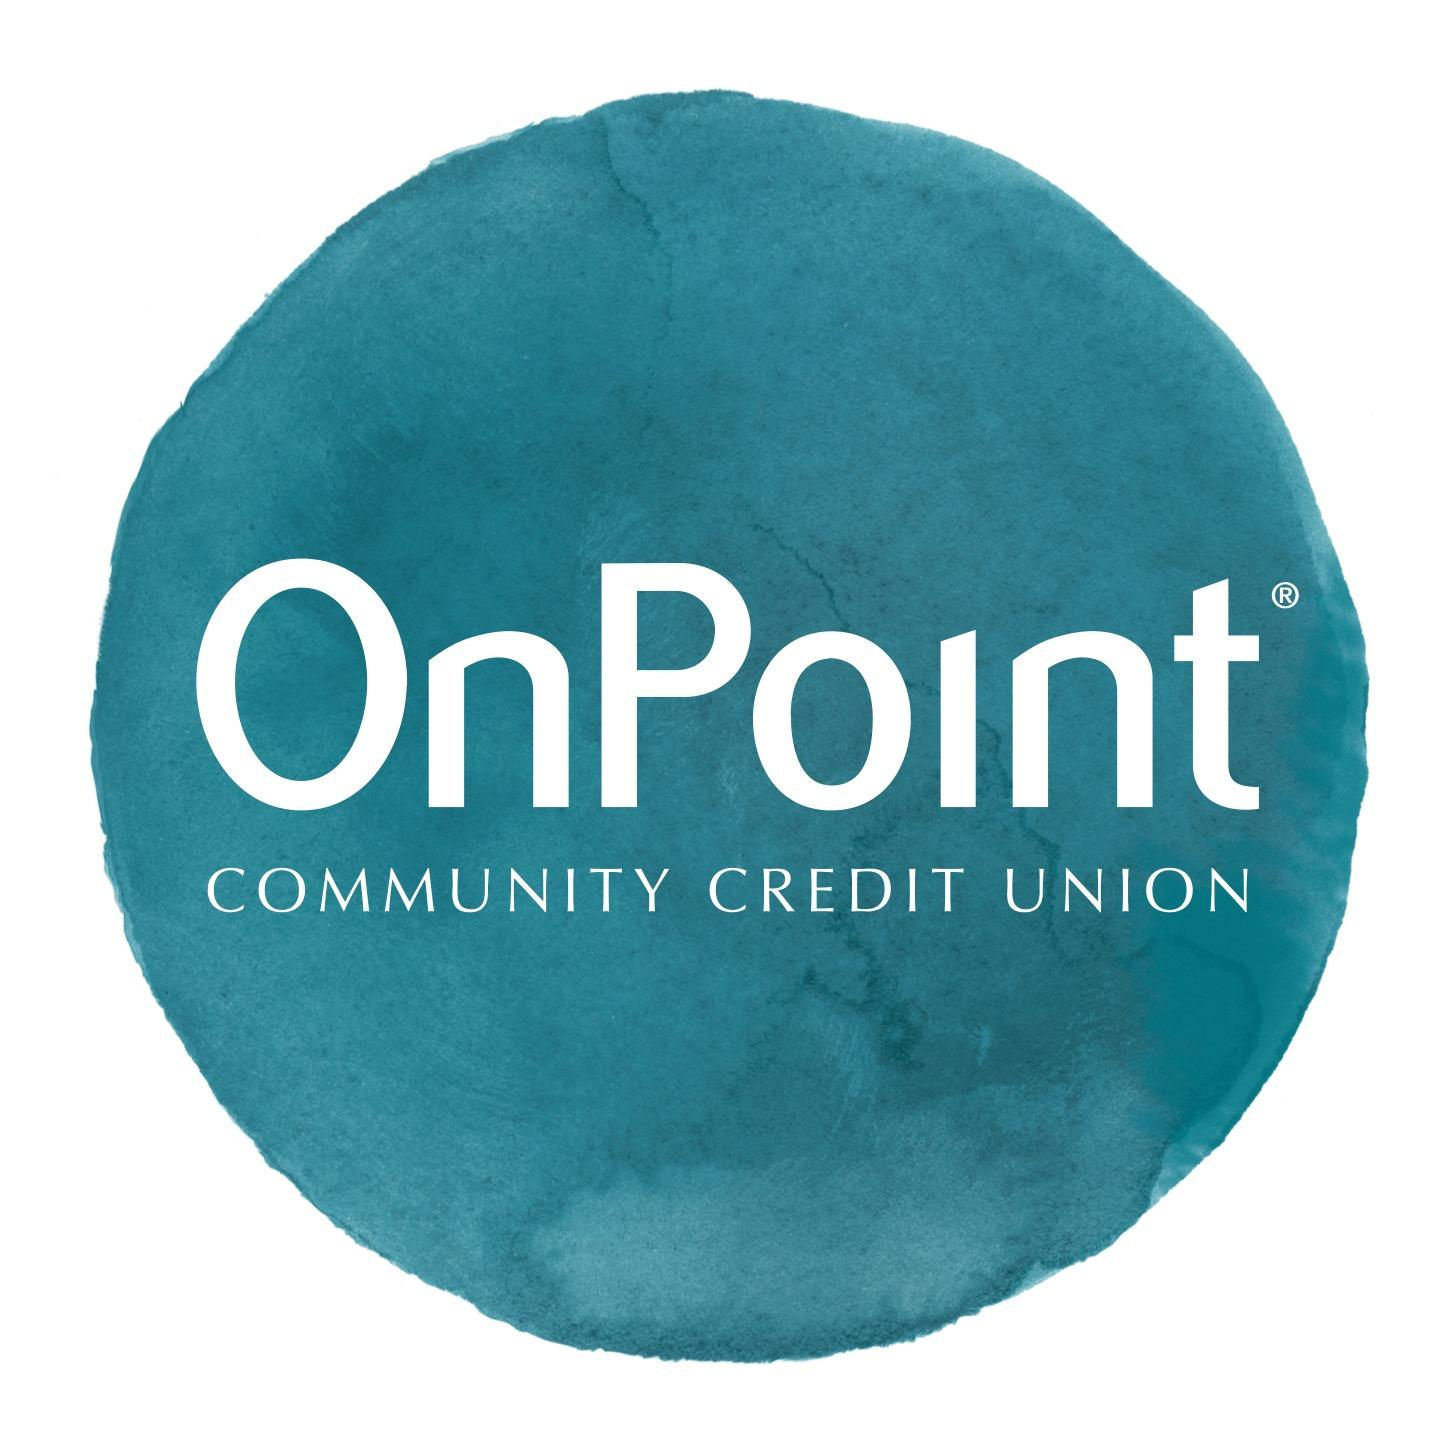 OnPoint Community Credit Union - Eugene, OR 97401 - (503)228-7077 | ShowMeLocal.com